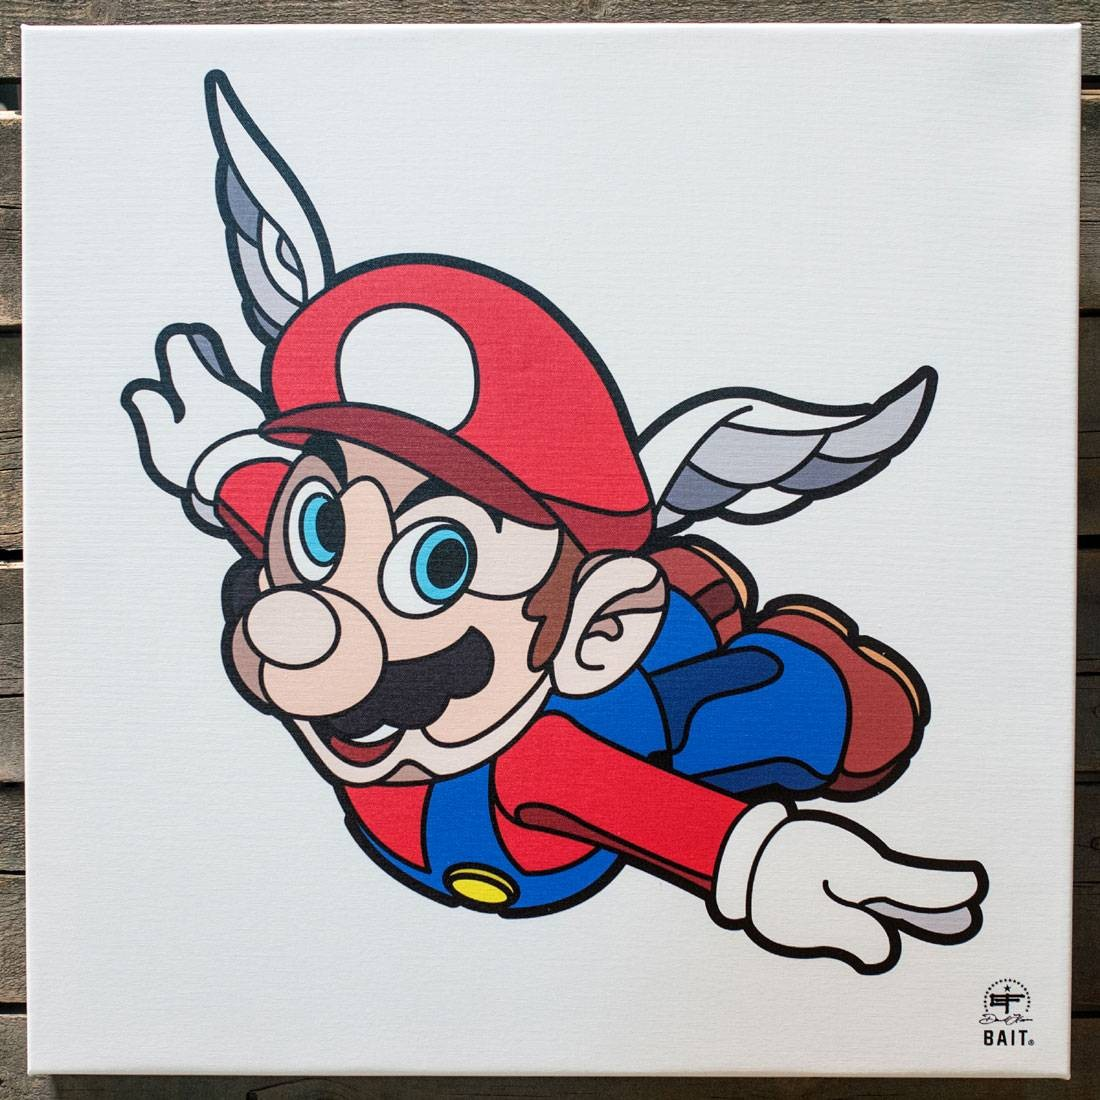 BAIT x David Flores 36 Inch Canvas - Mario (red)